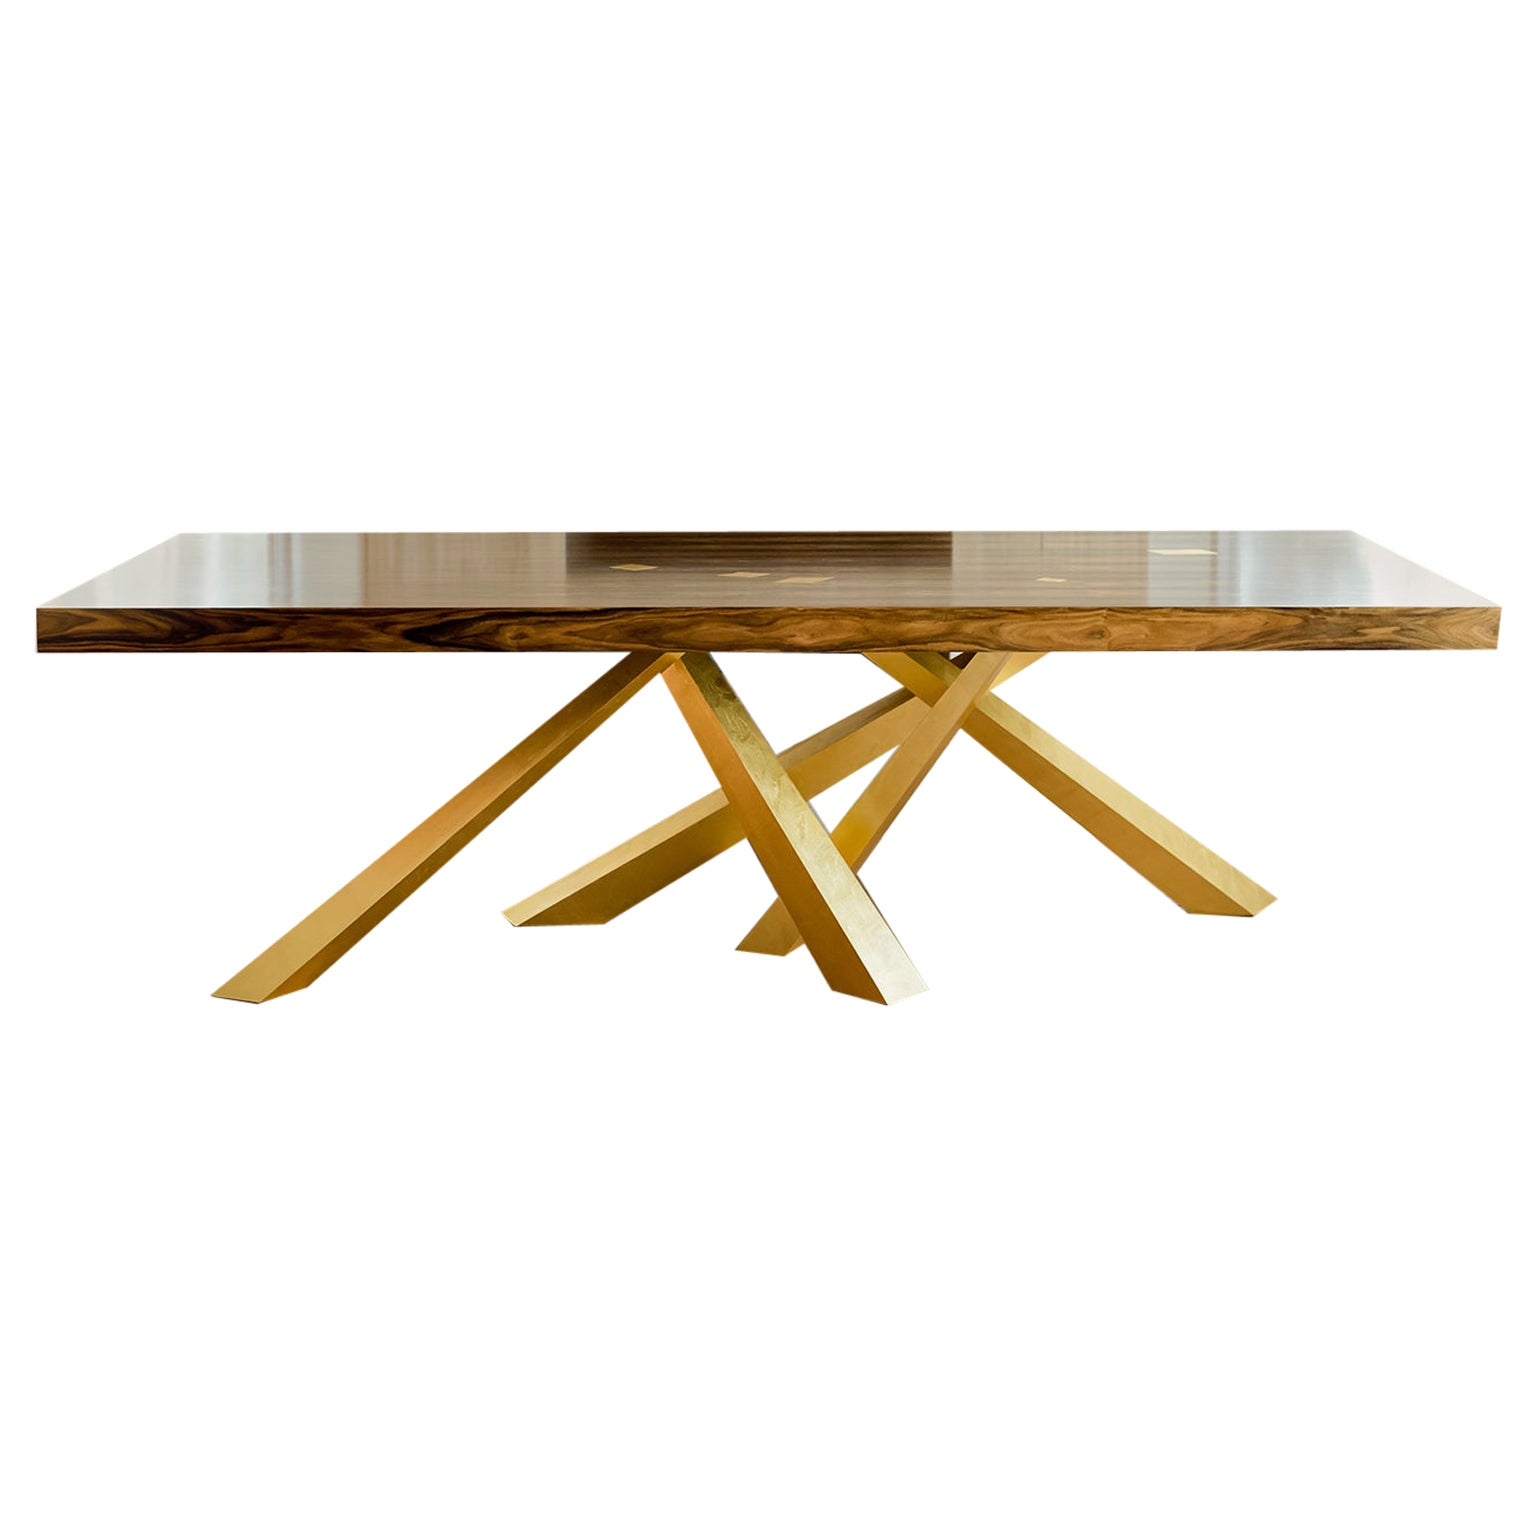 Prince Dining Table, Contemporary, Rosewood and Gold Leaf, by Dean and Dahl